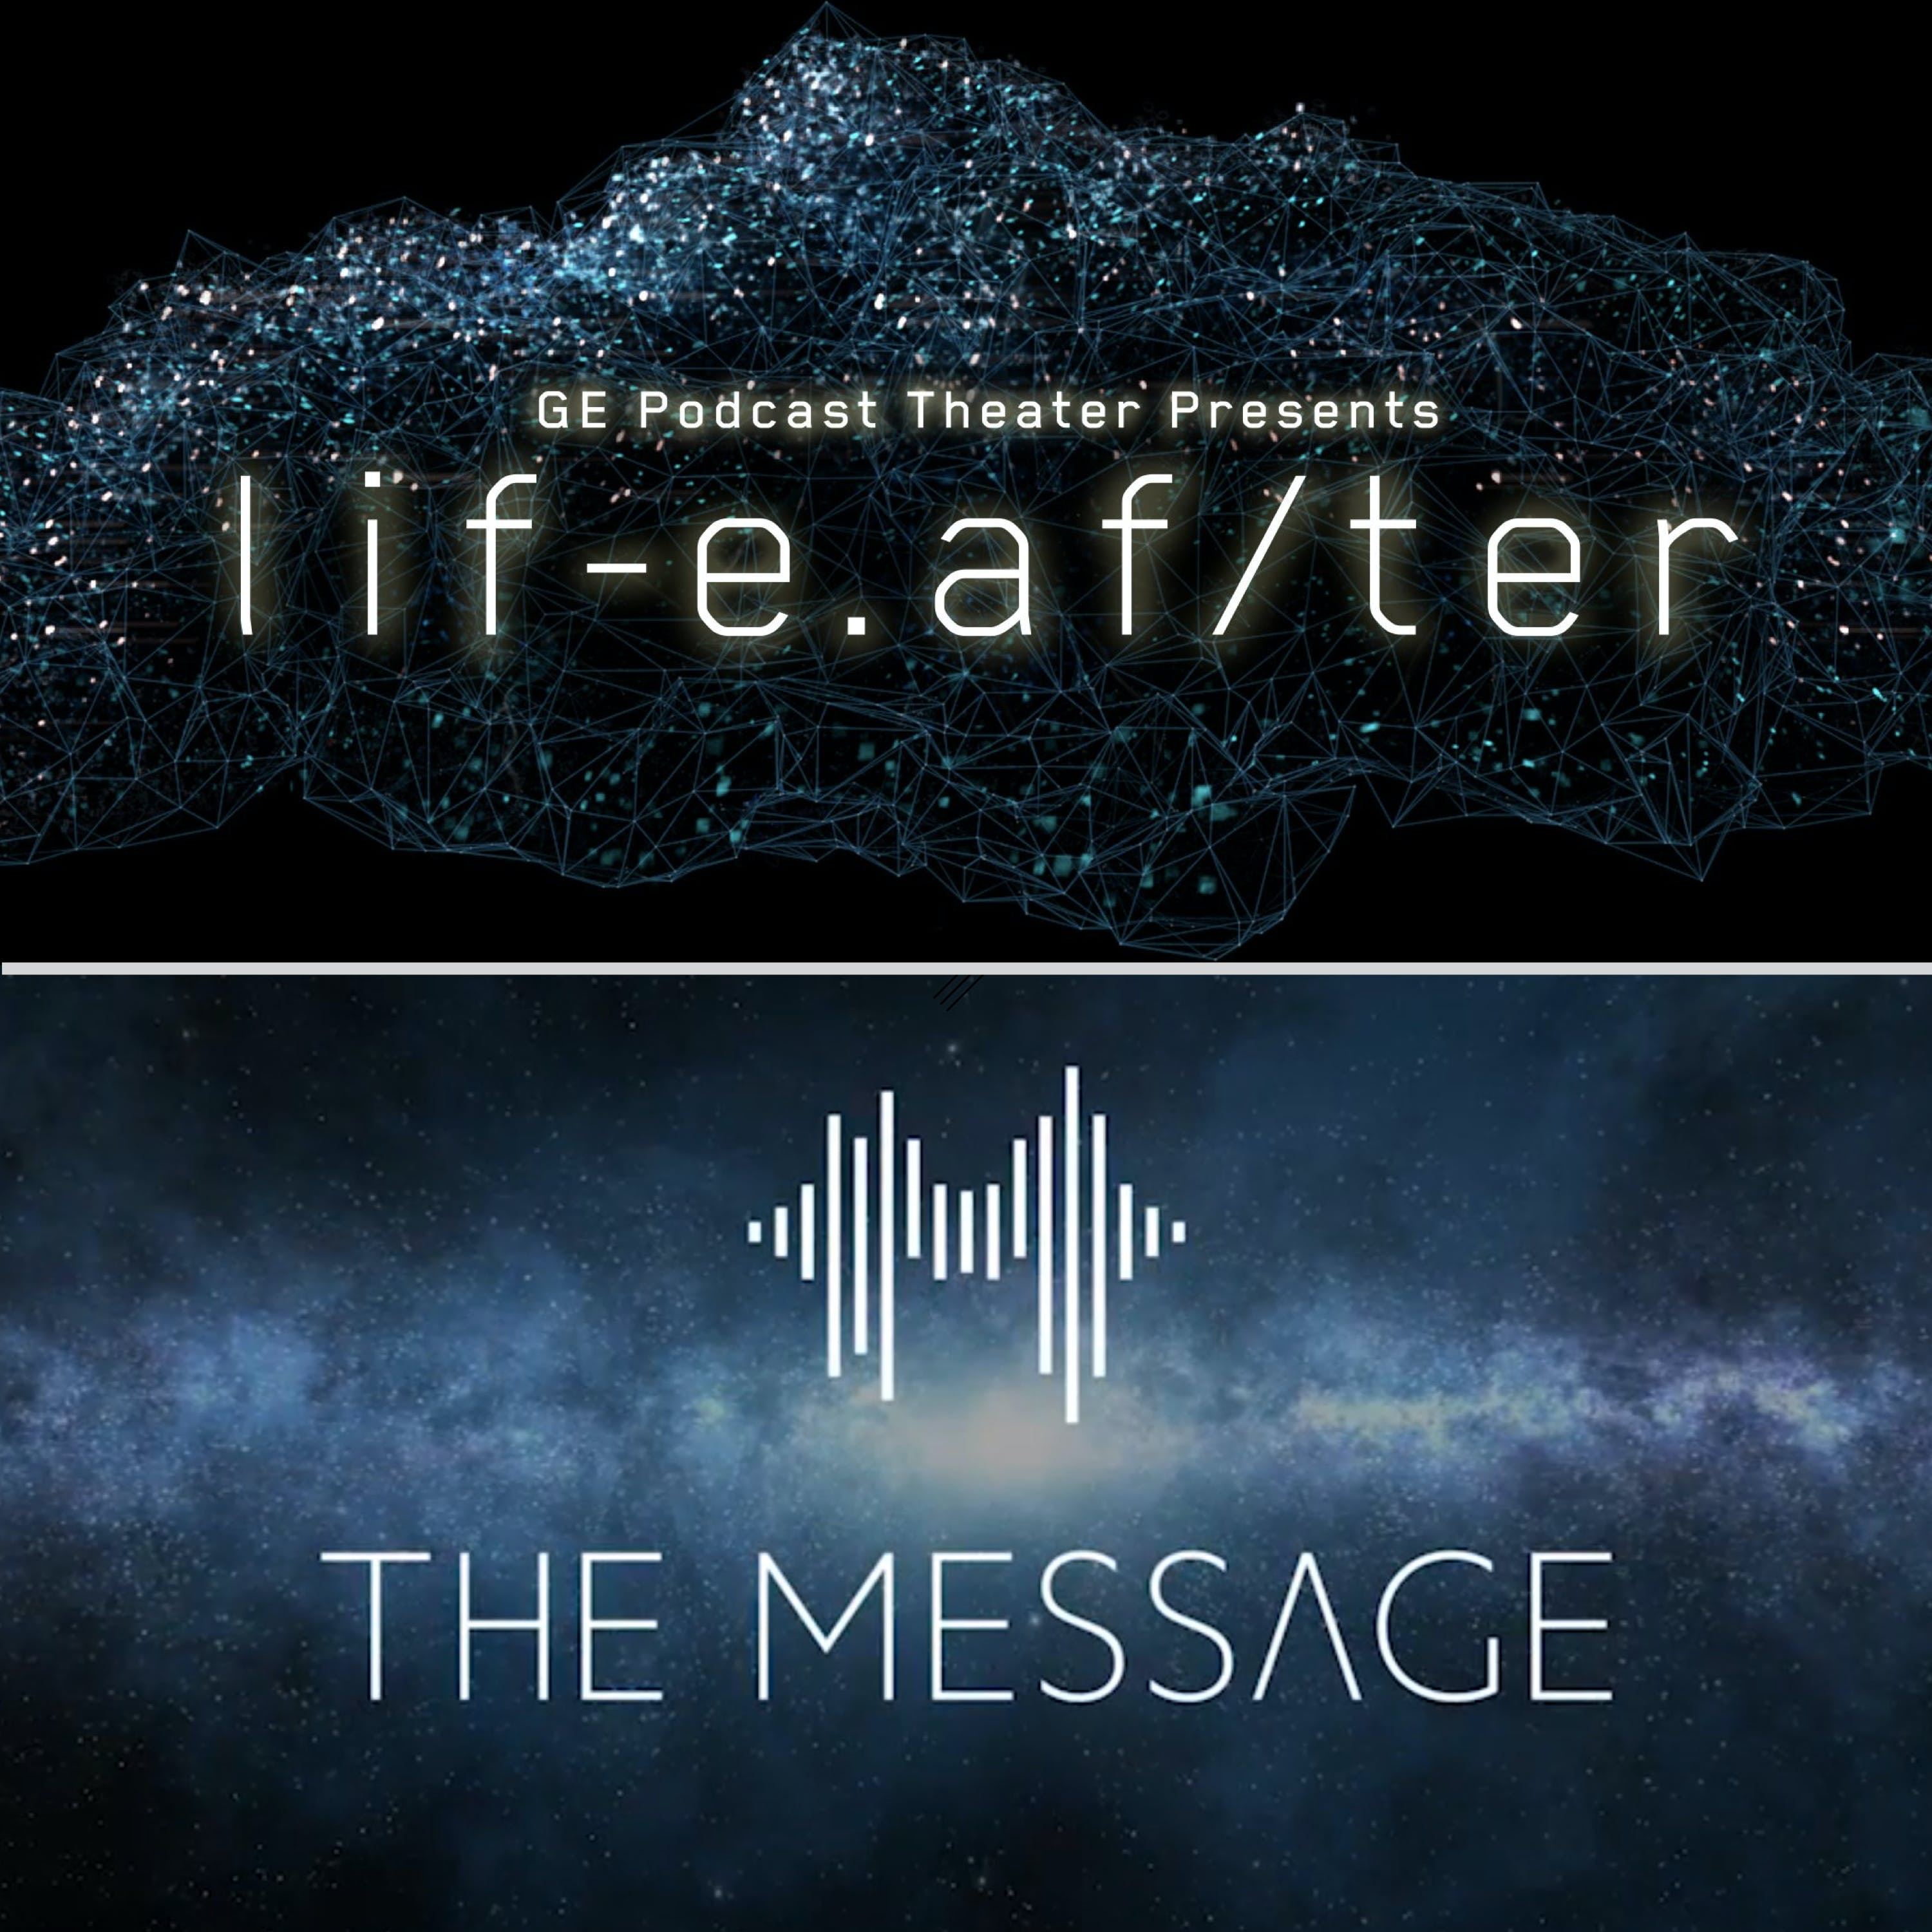 LifeAfter/The Message podcast show image